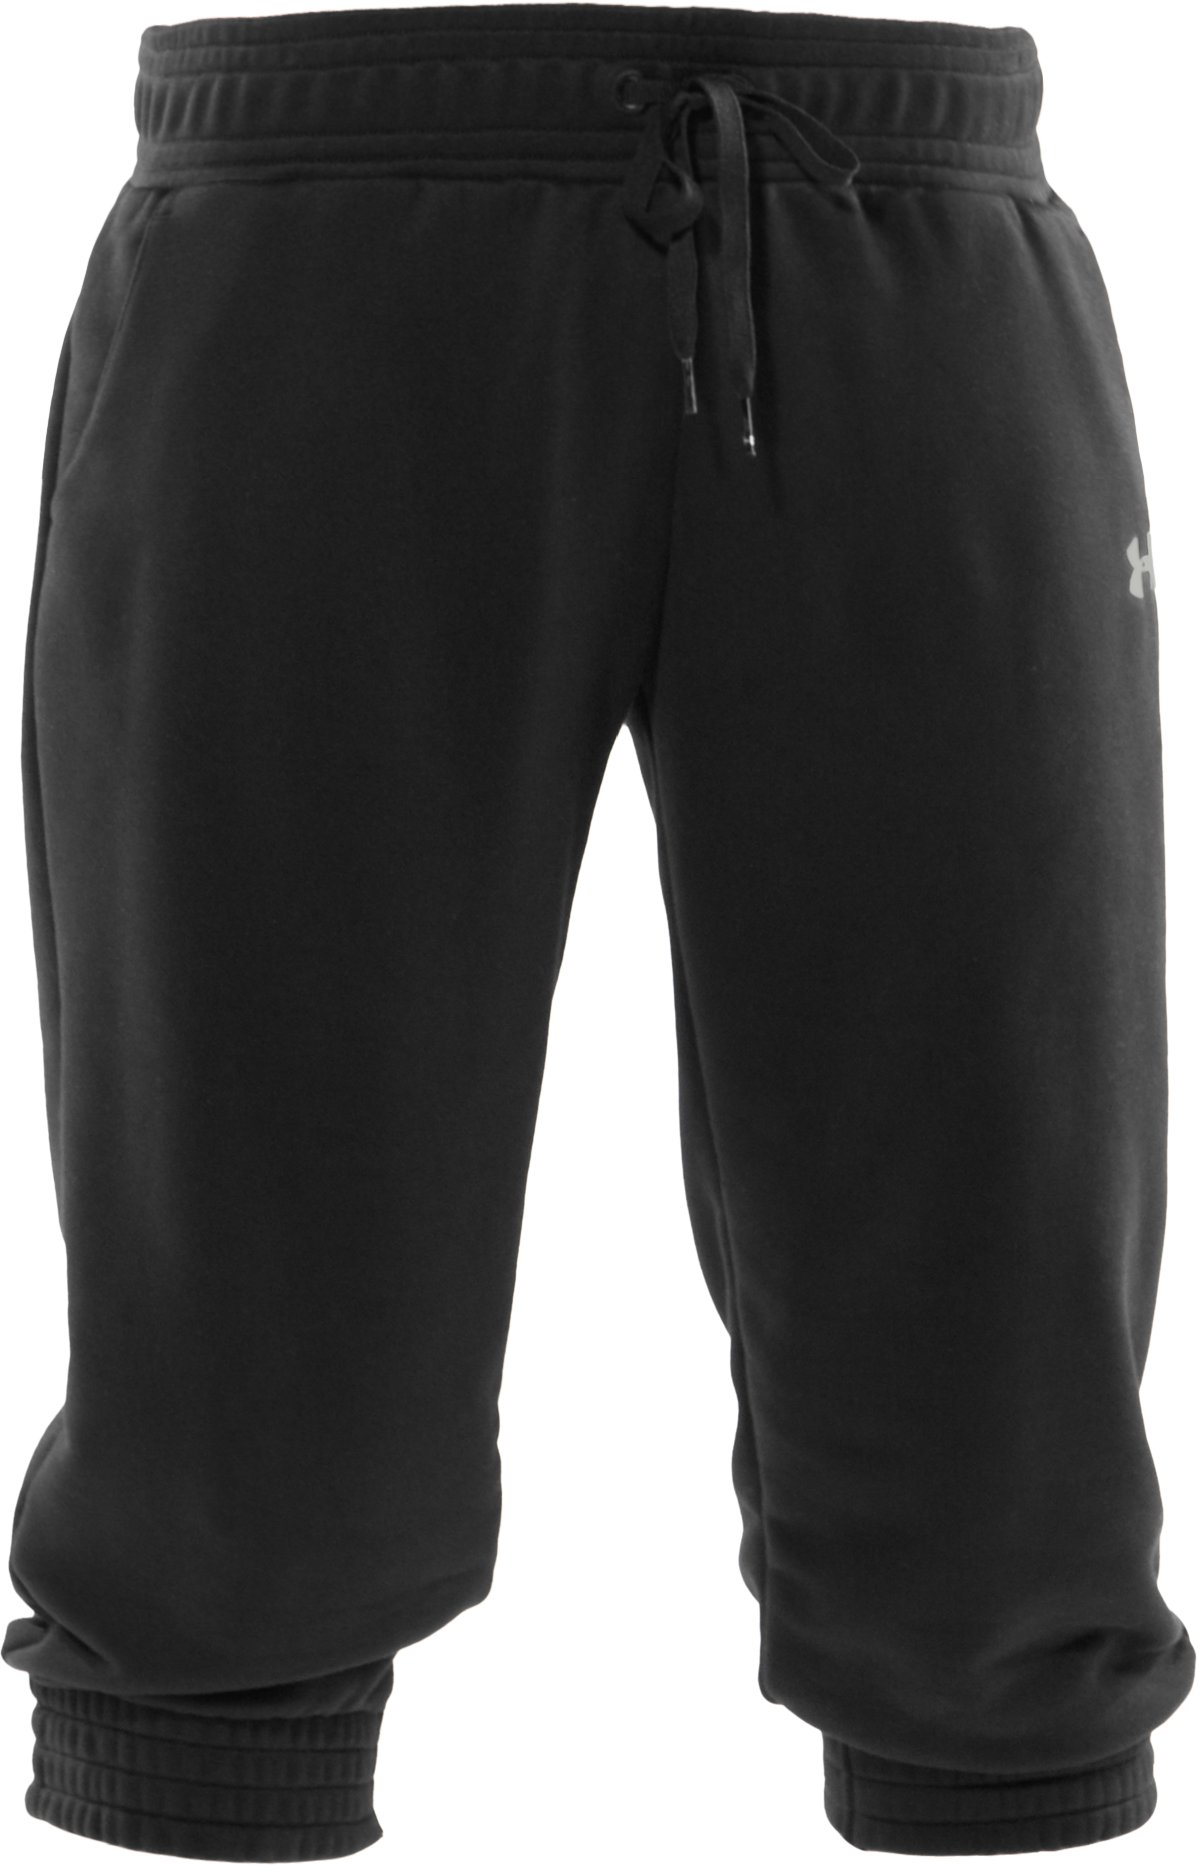 Women's Varsity Capri Pants, Black